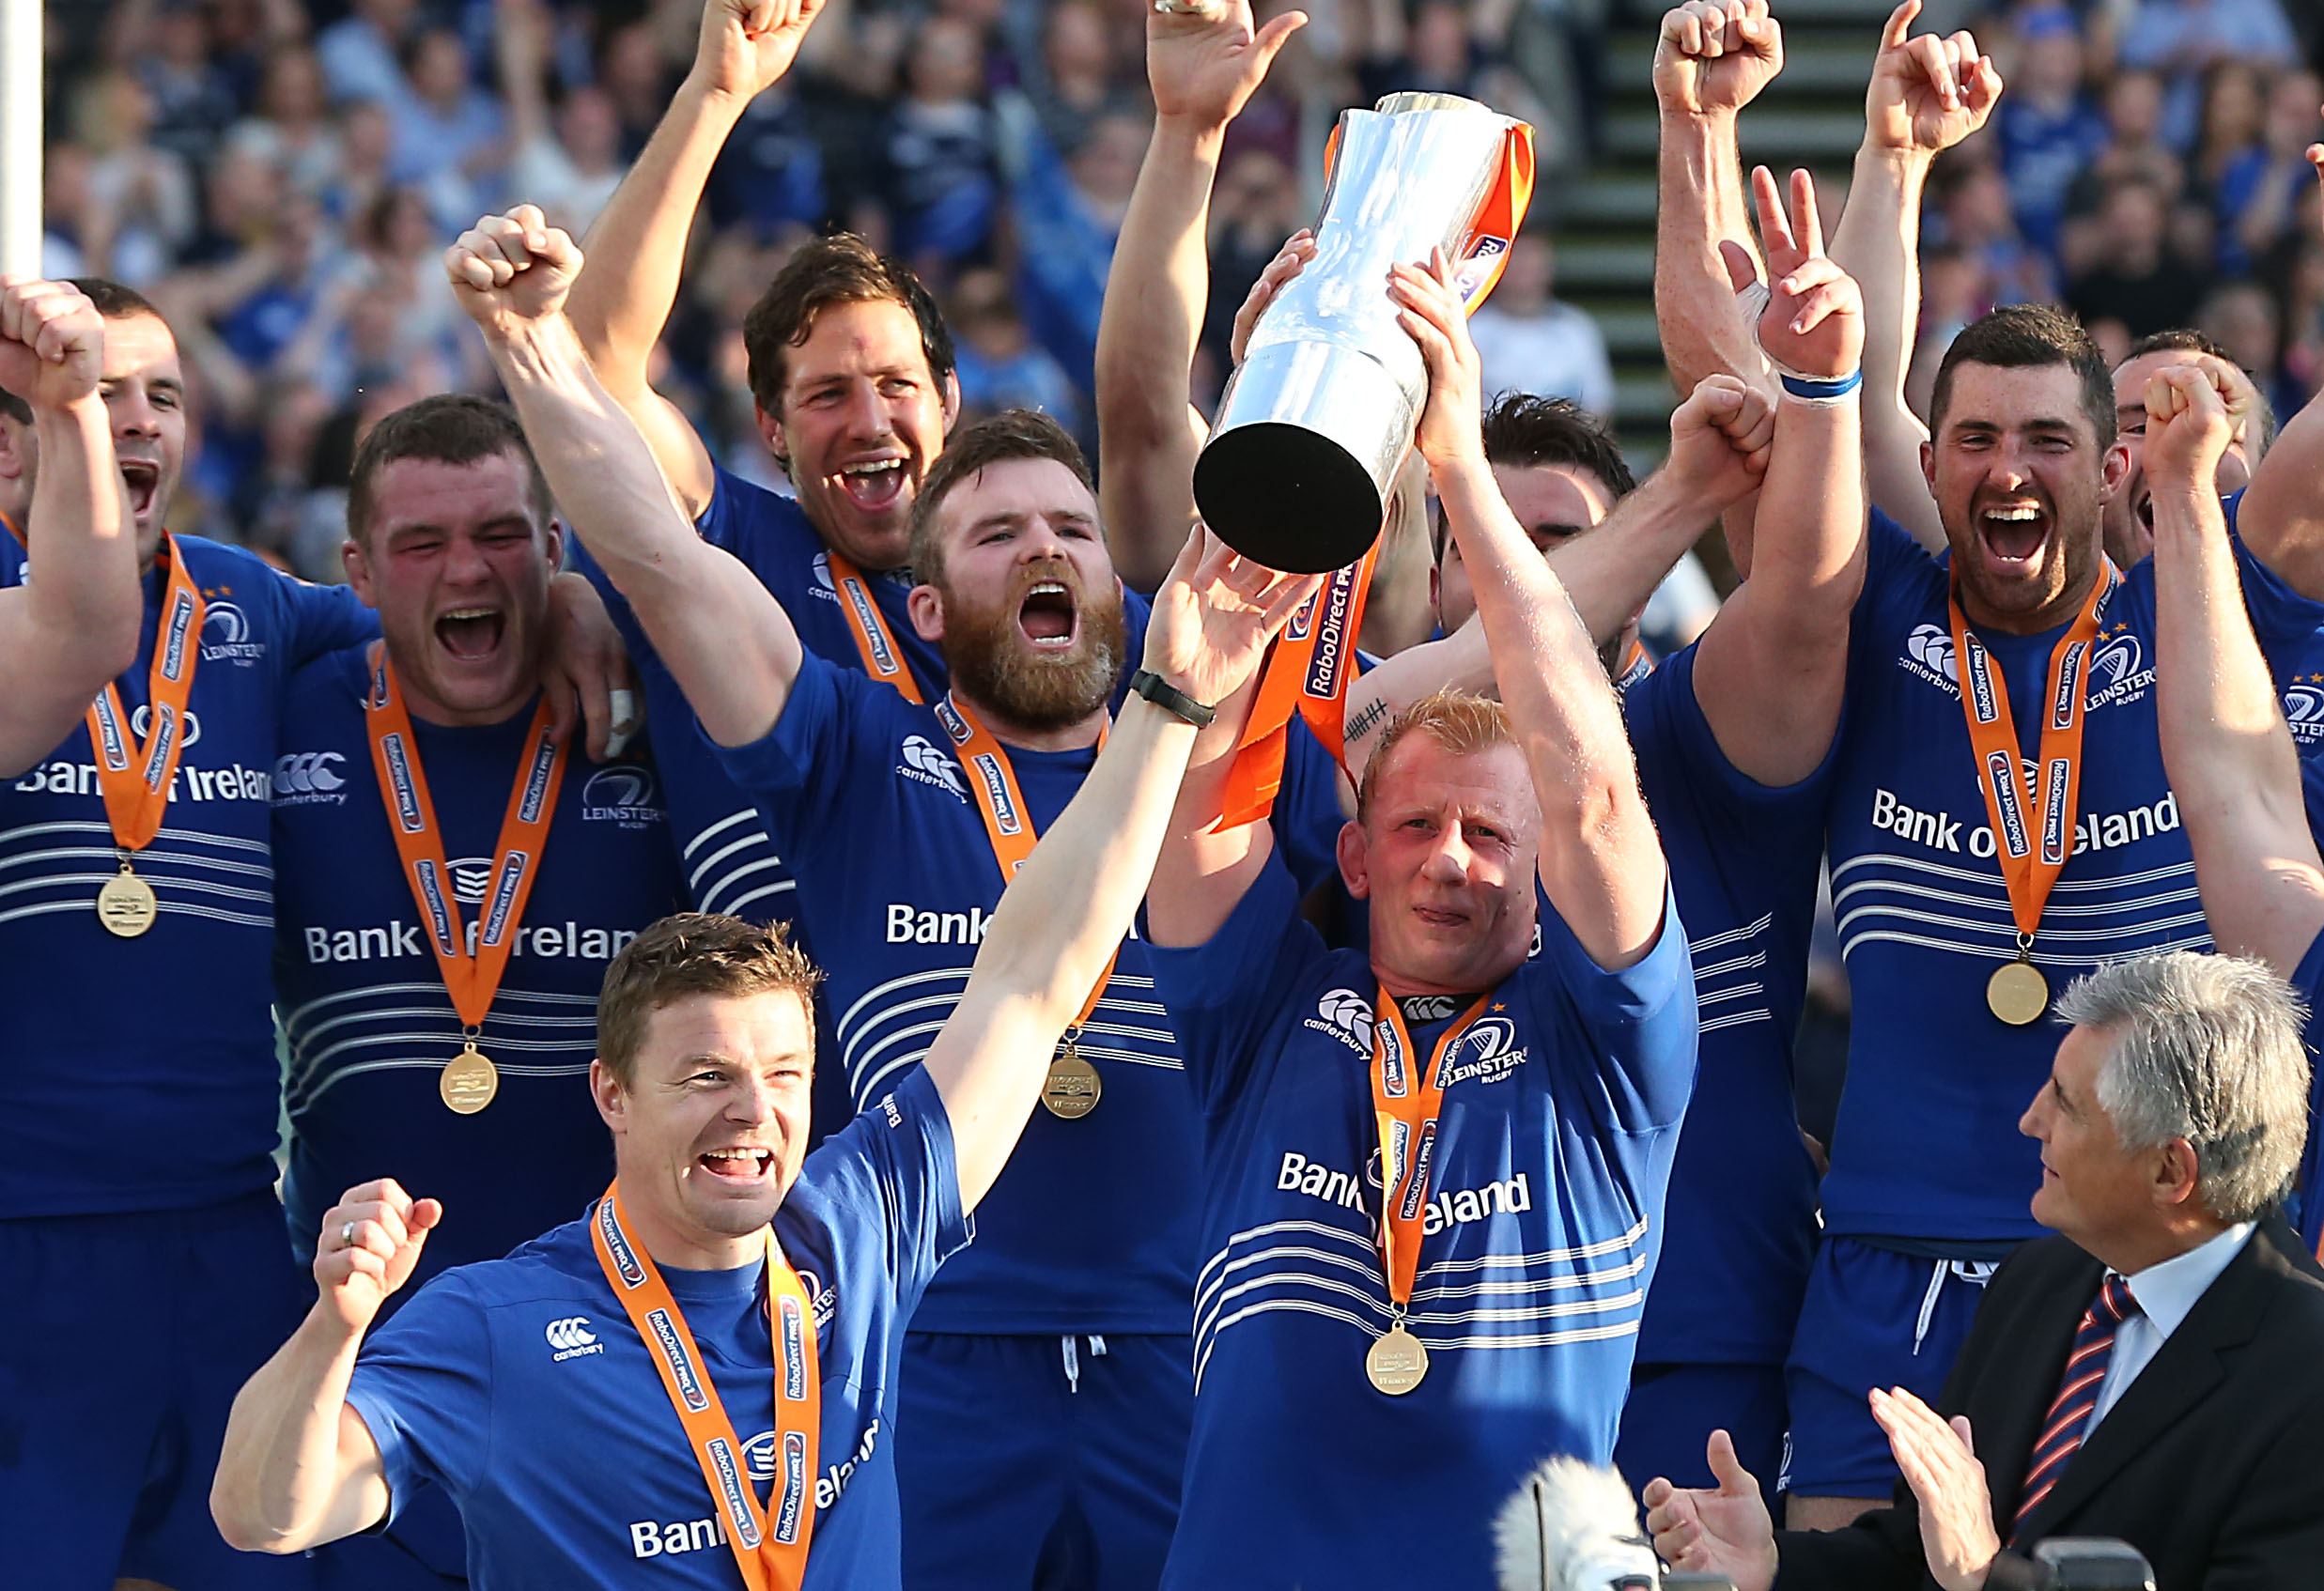 Can Leinster, Munster or Ulster claim this year's Guinness PRO14 title?